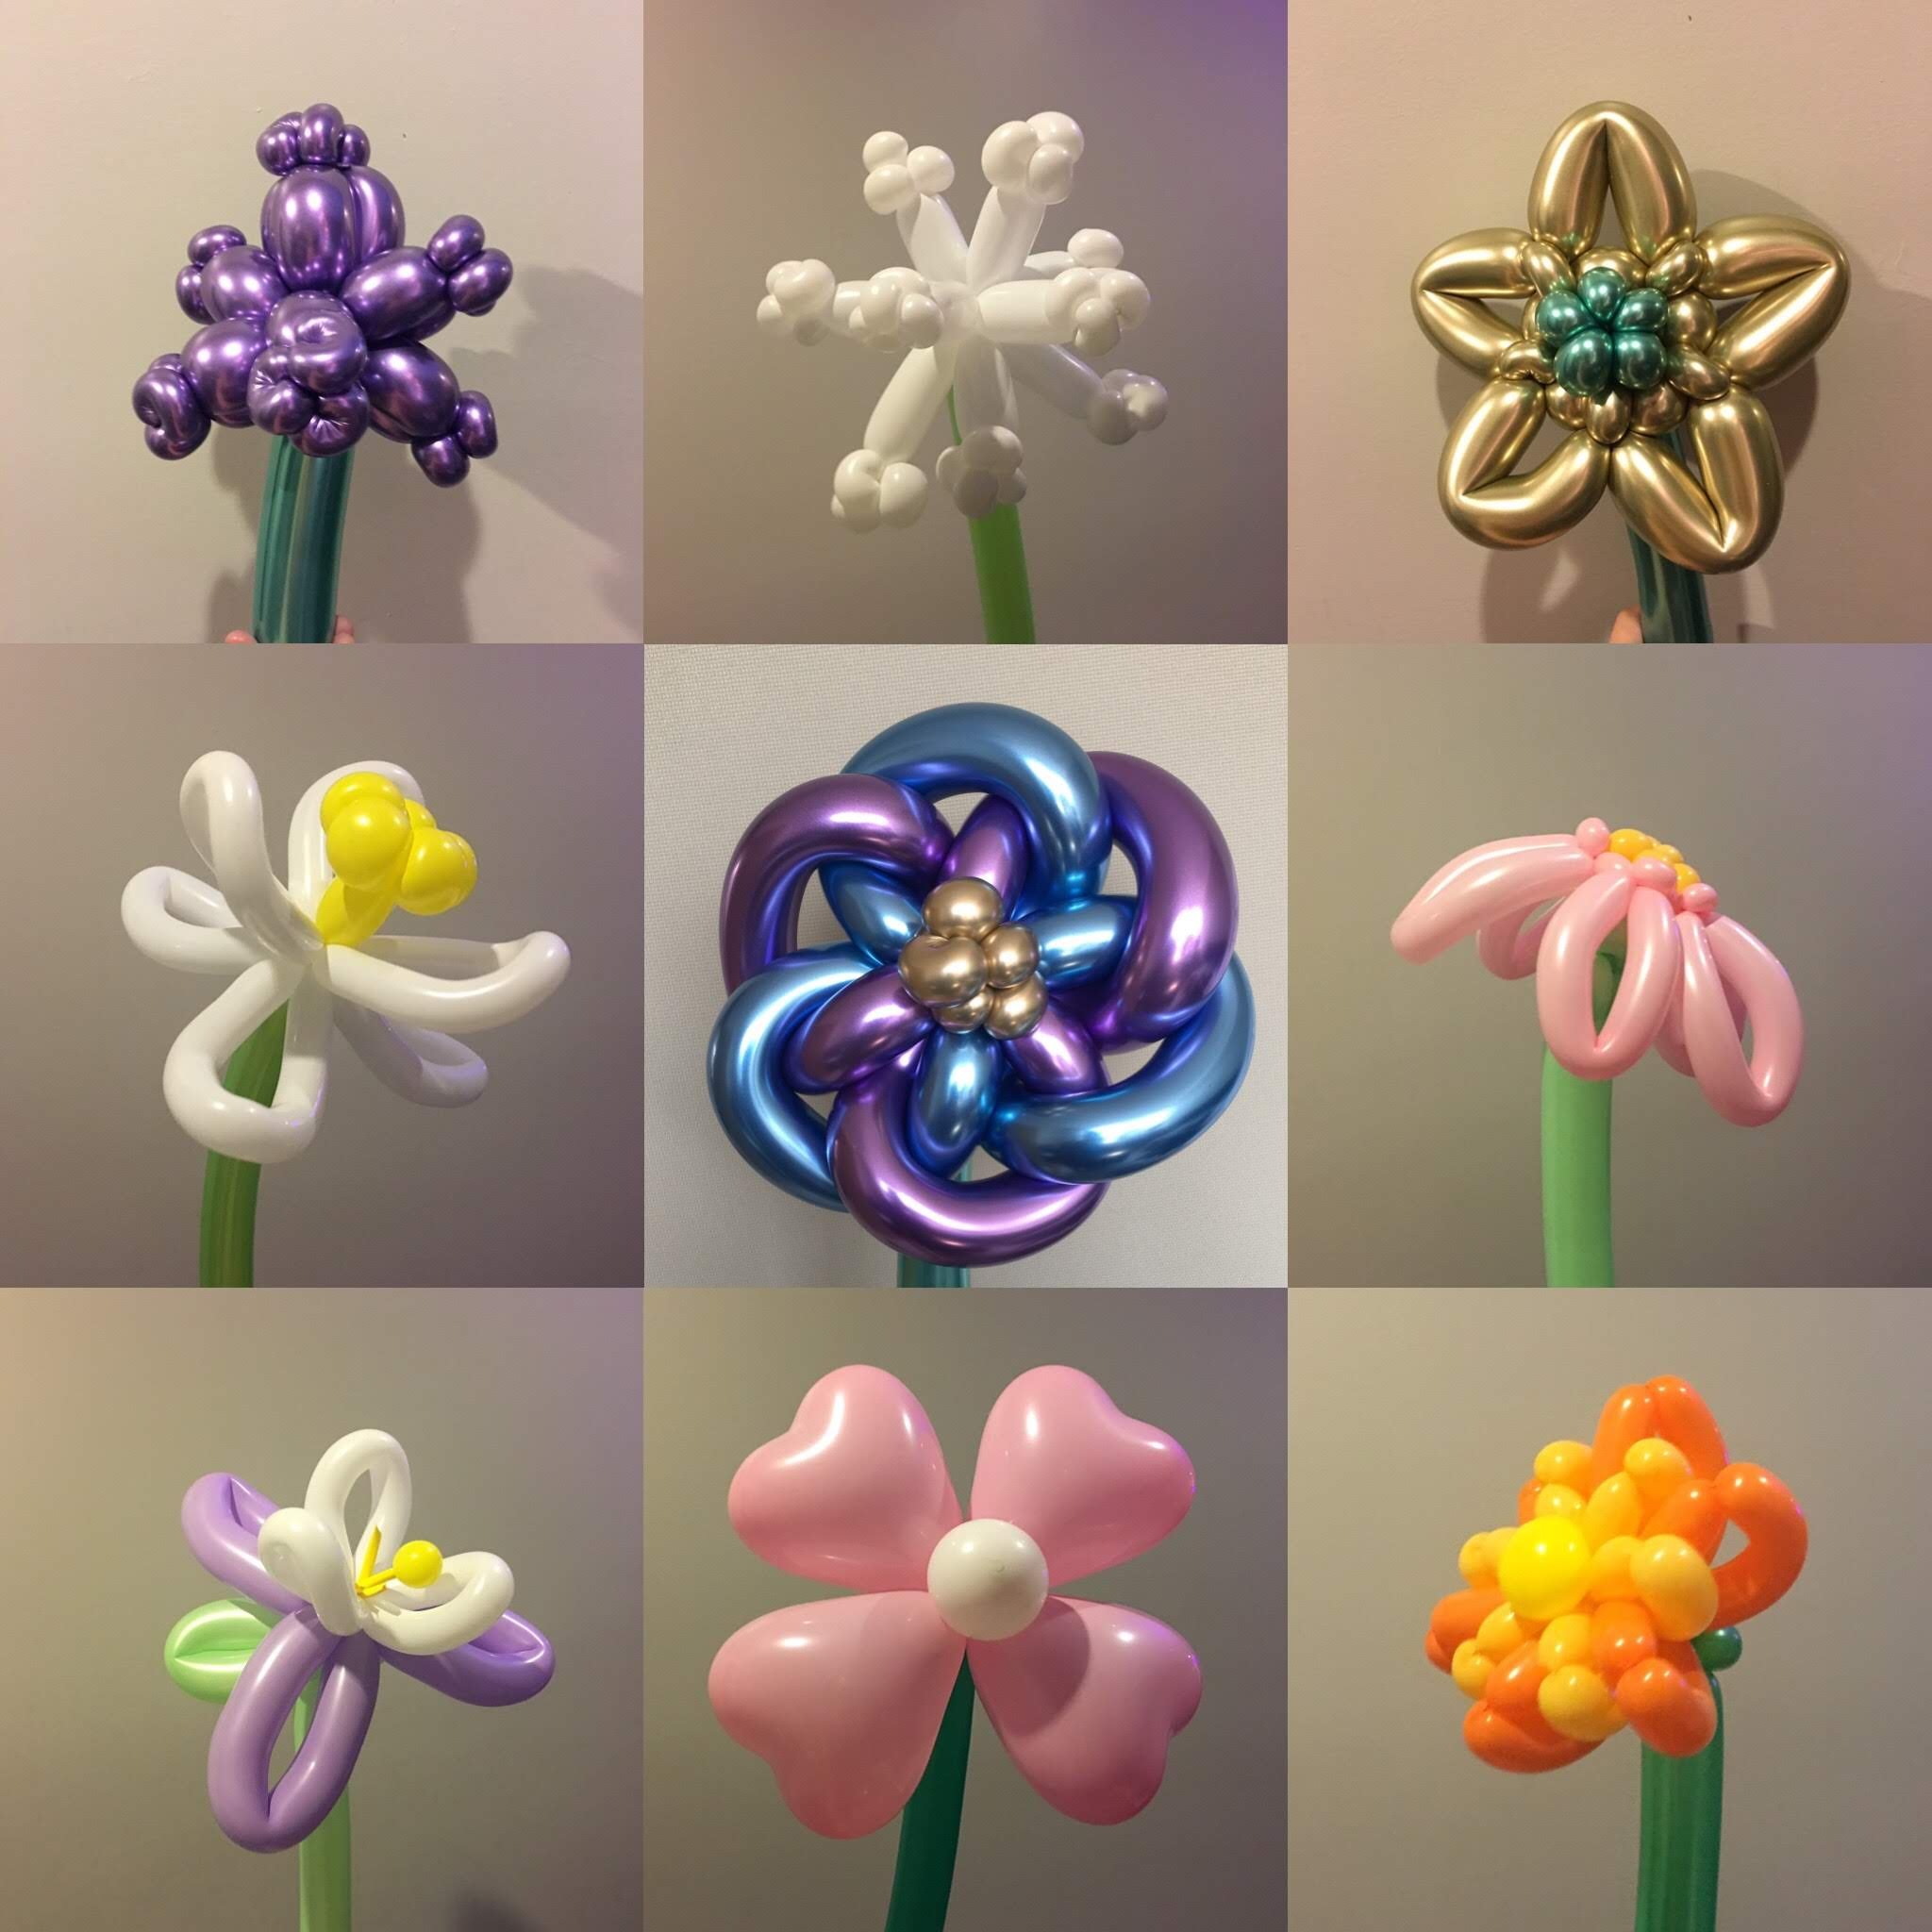 Gold-Tier Balloon Flowers examples